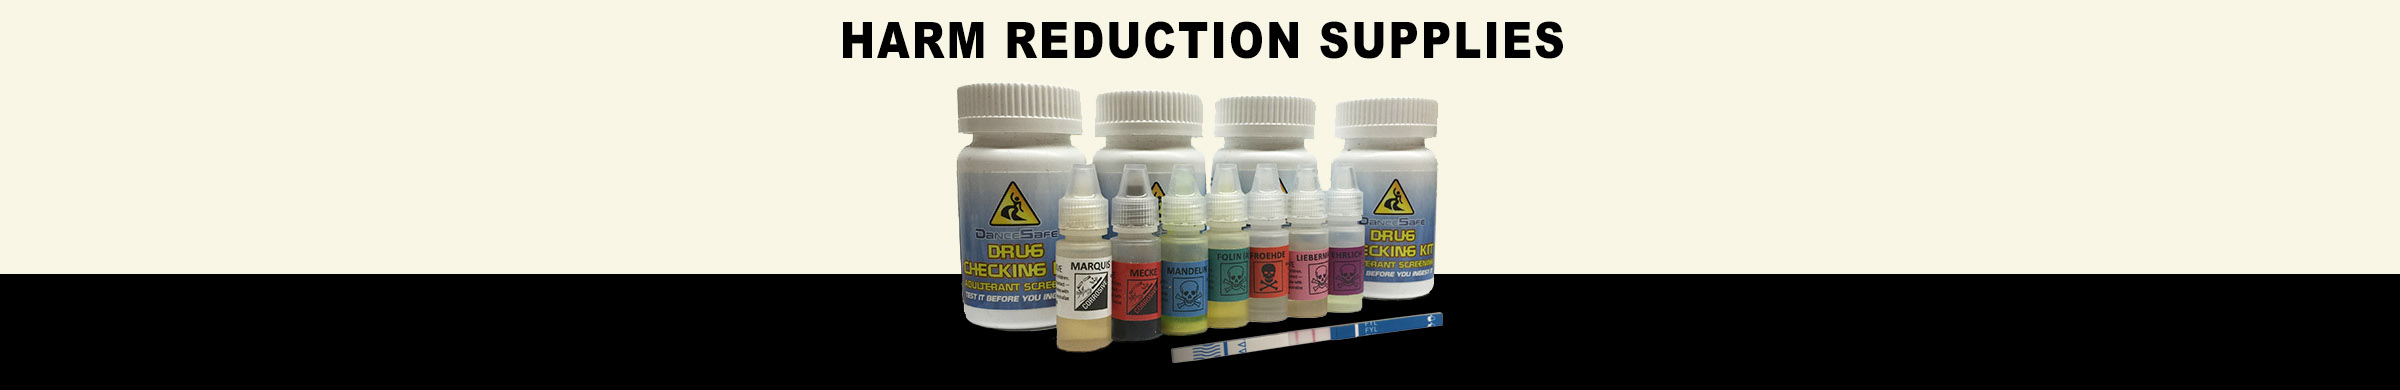 Drug testing kits and other harm reduction supplies